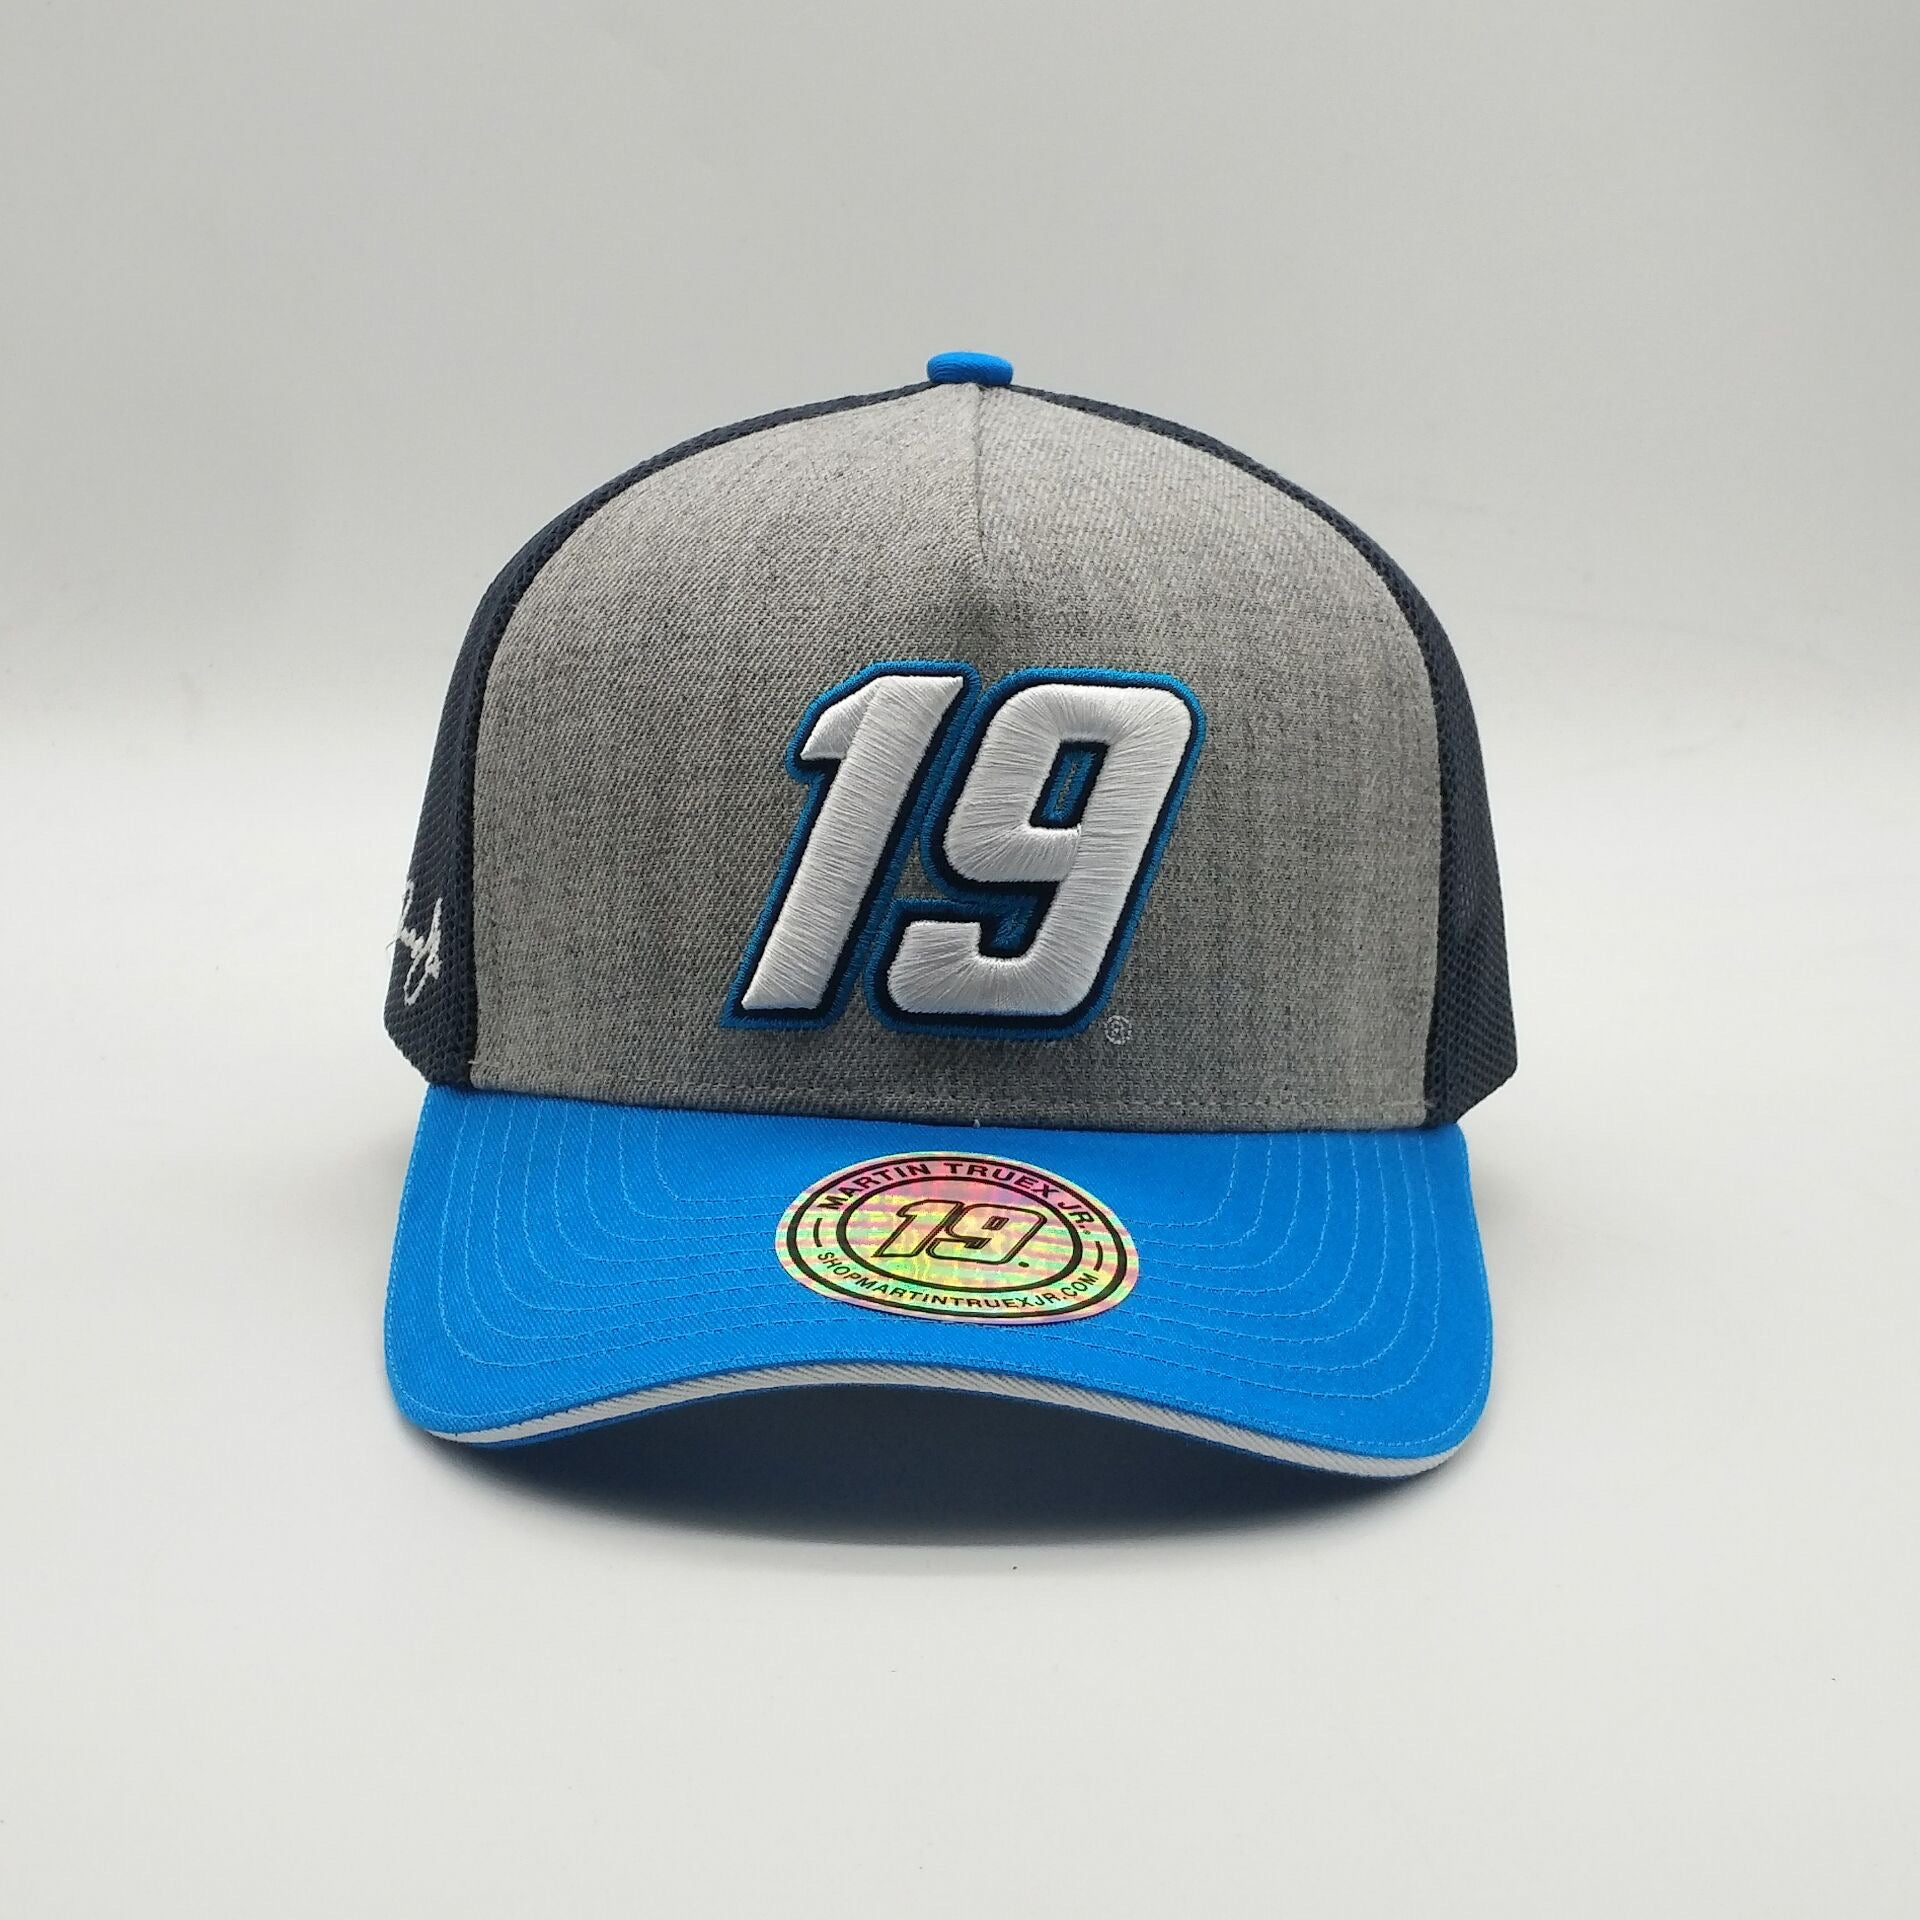 *PRE-ORDER* 2020 #19 Martin Truex Jr. Auto-Owners Insurance Trucker Hat